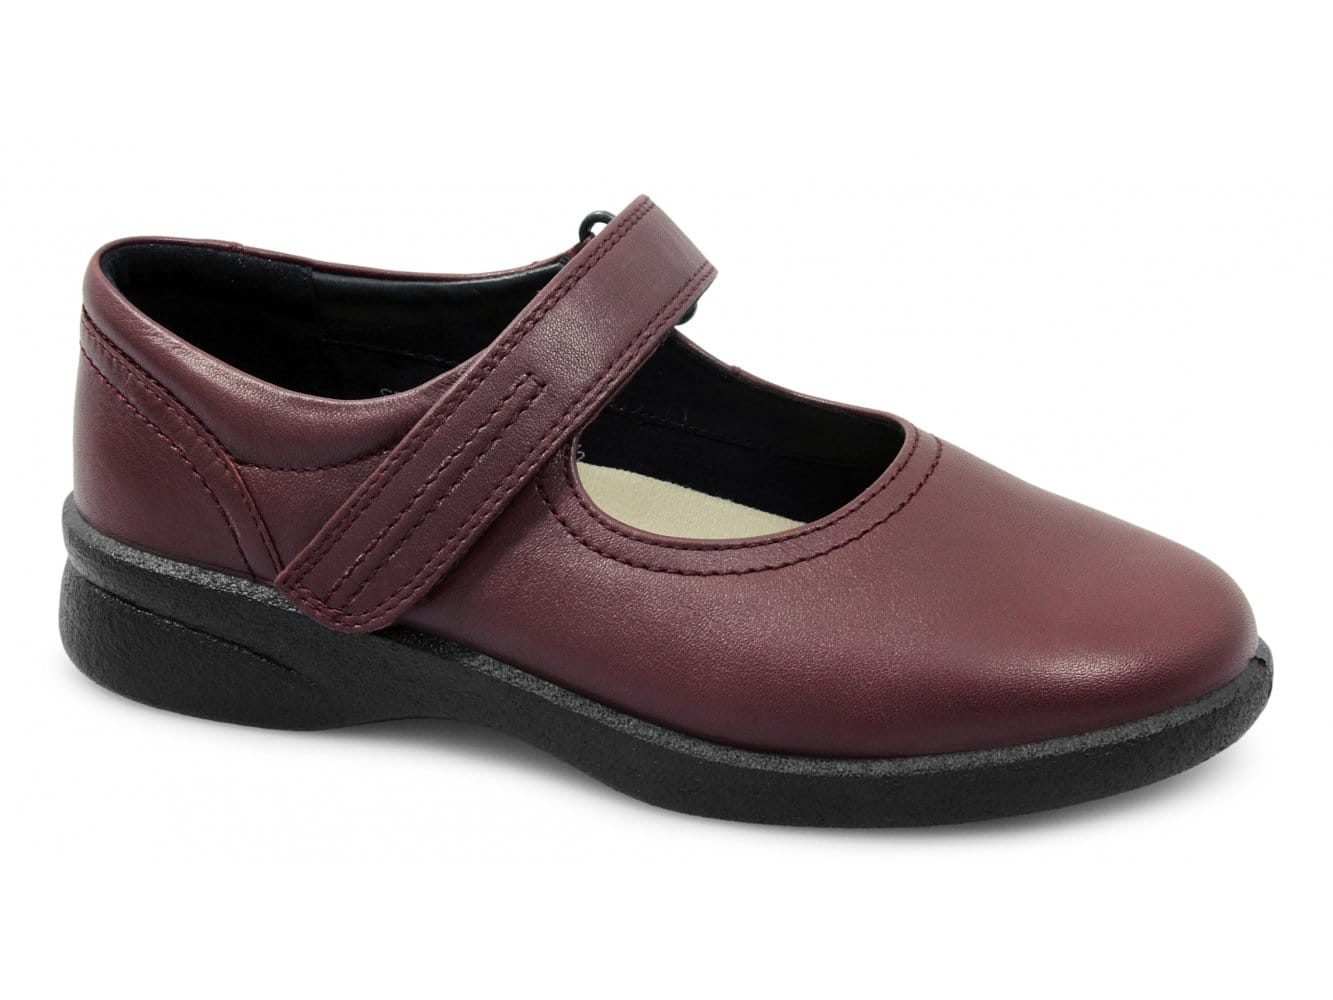 5d7abfa5889 Padders SPRITE Ladies Leather Extra Wide (3E/4E) Shoes Cherry Red